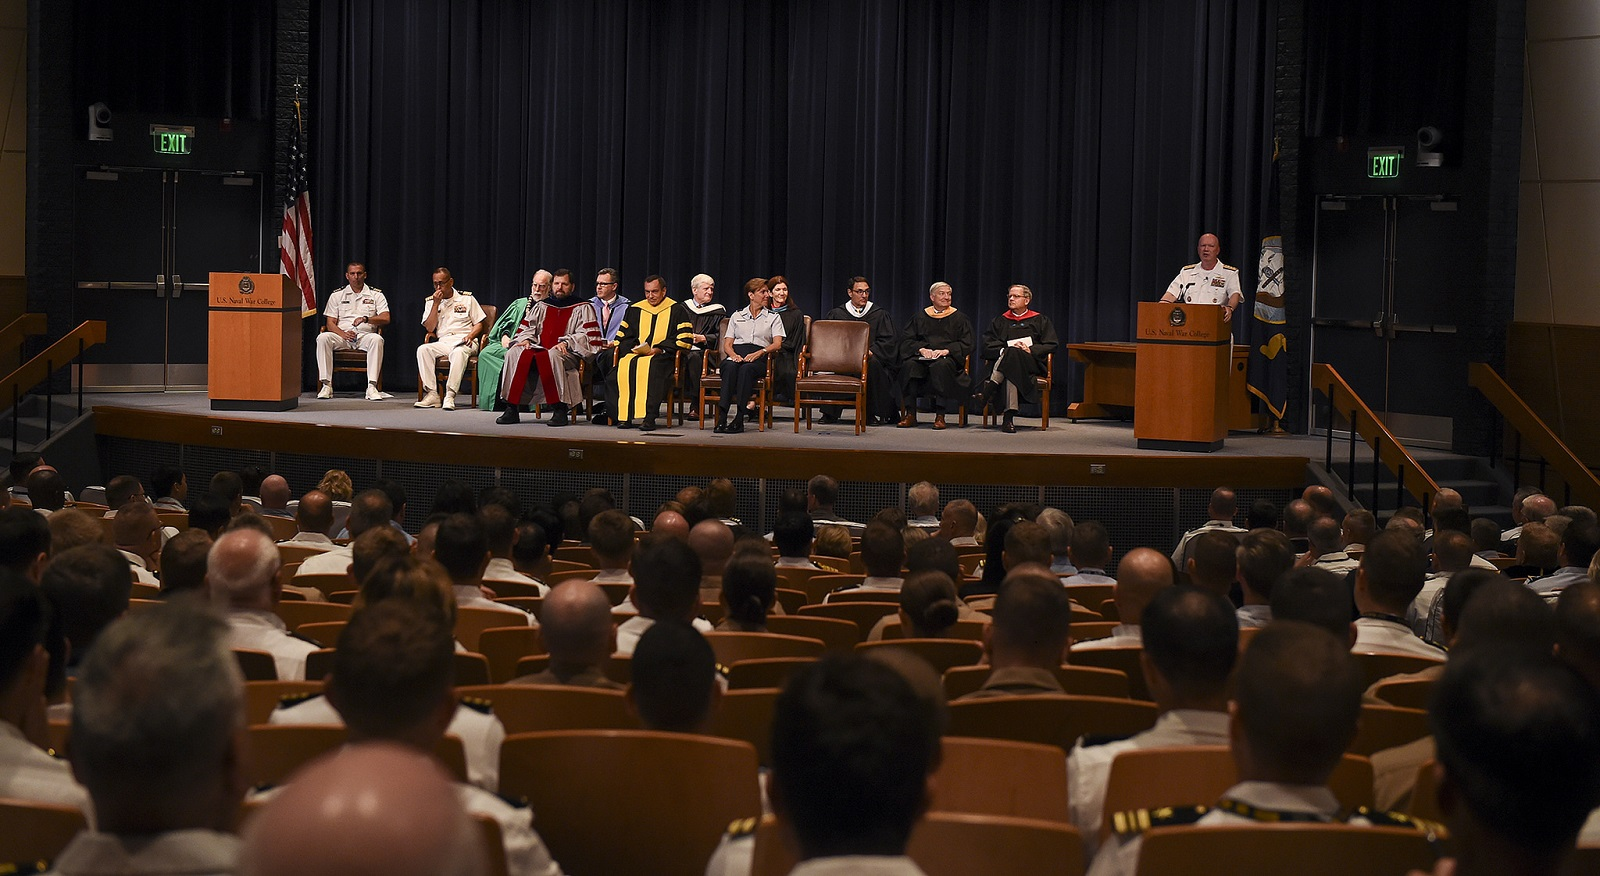 Rear Adm. Jeffrey A. Harley, president, U.S. Naval War College (NWC), addresses students, staff, faculty and guests during a convocation ceremony kicking off the 2017-2018 academic year.